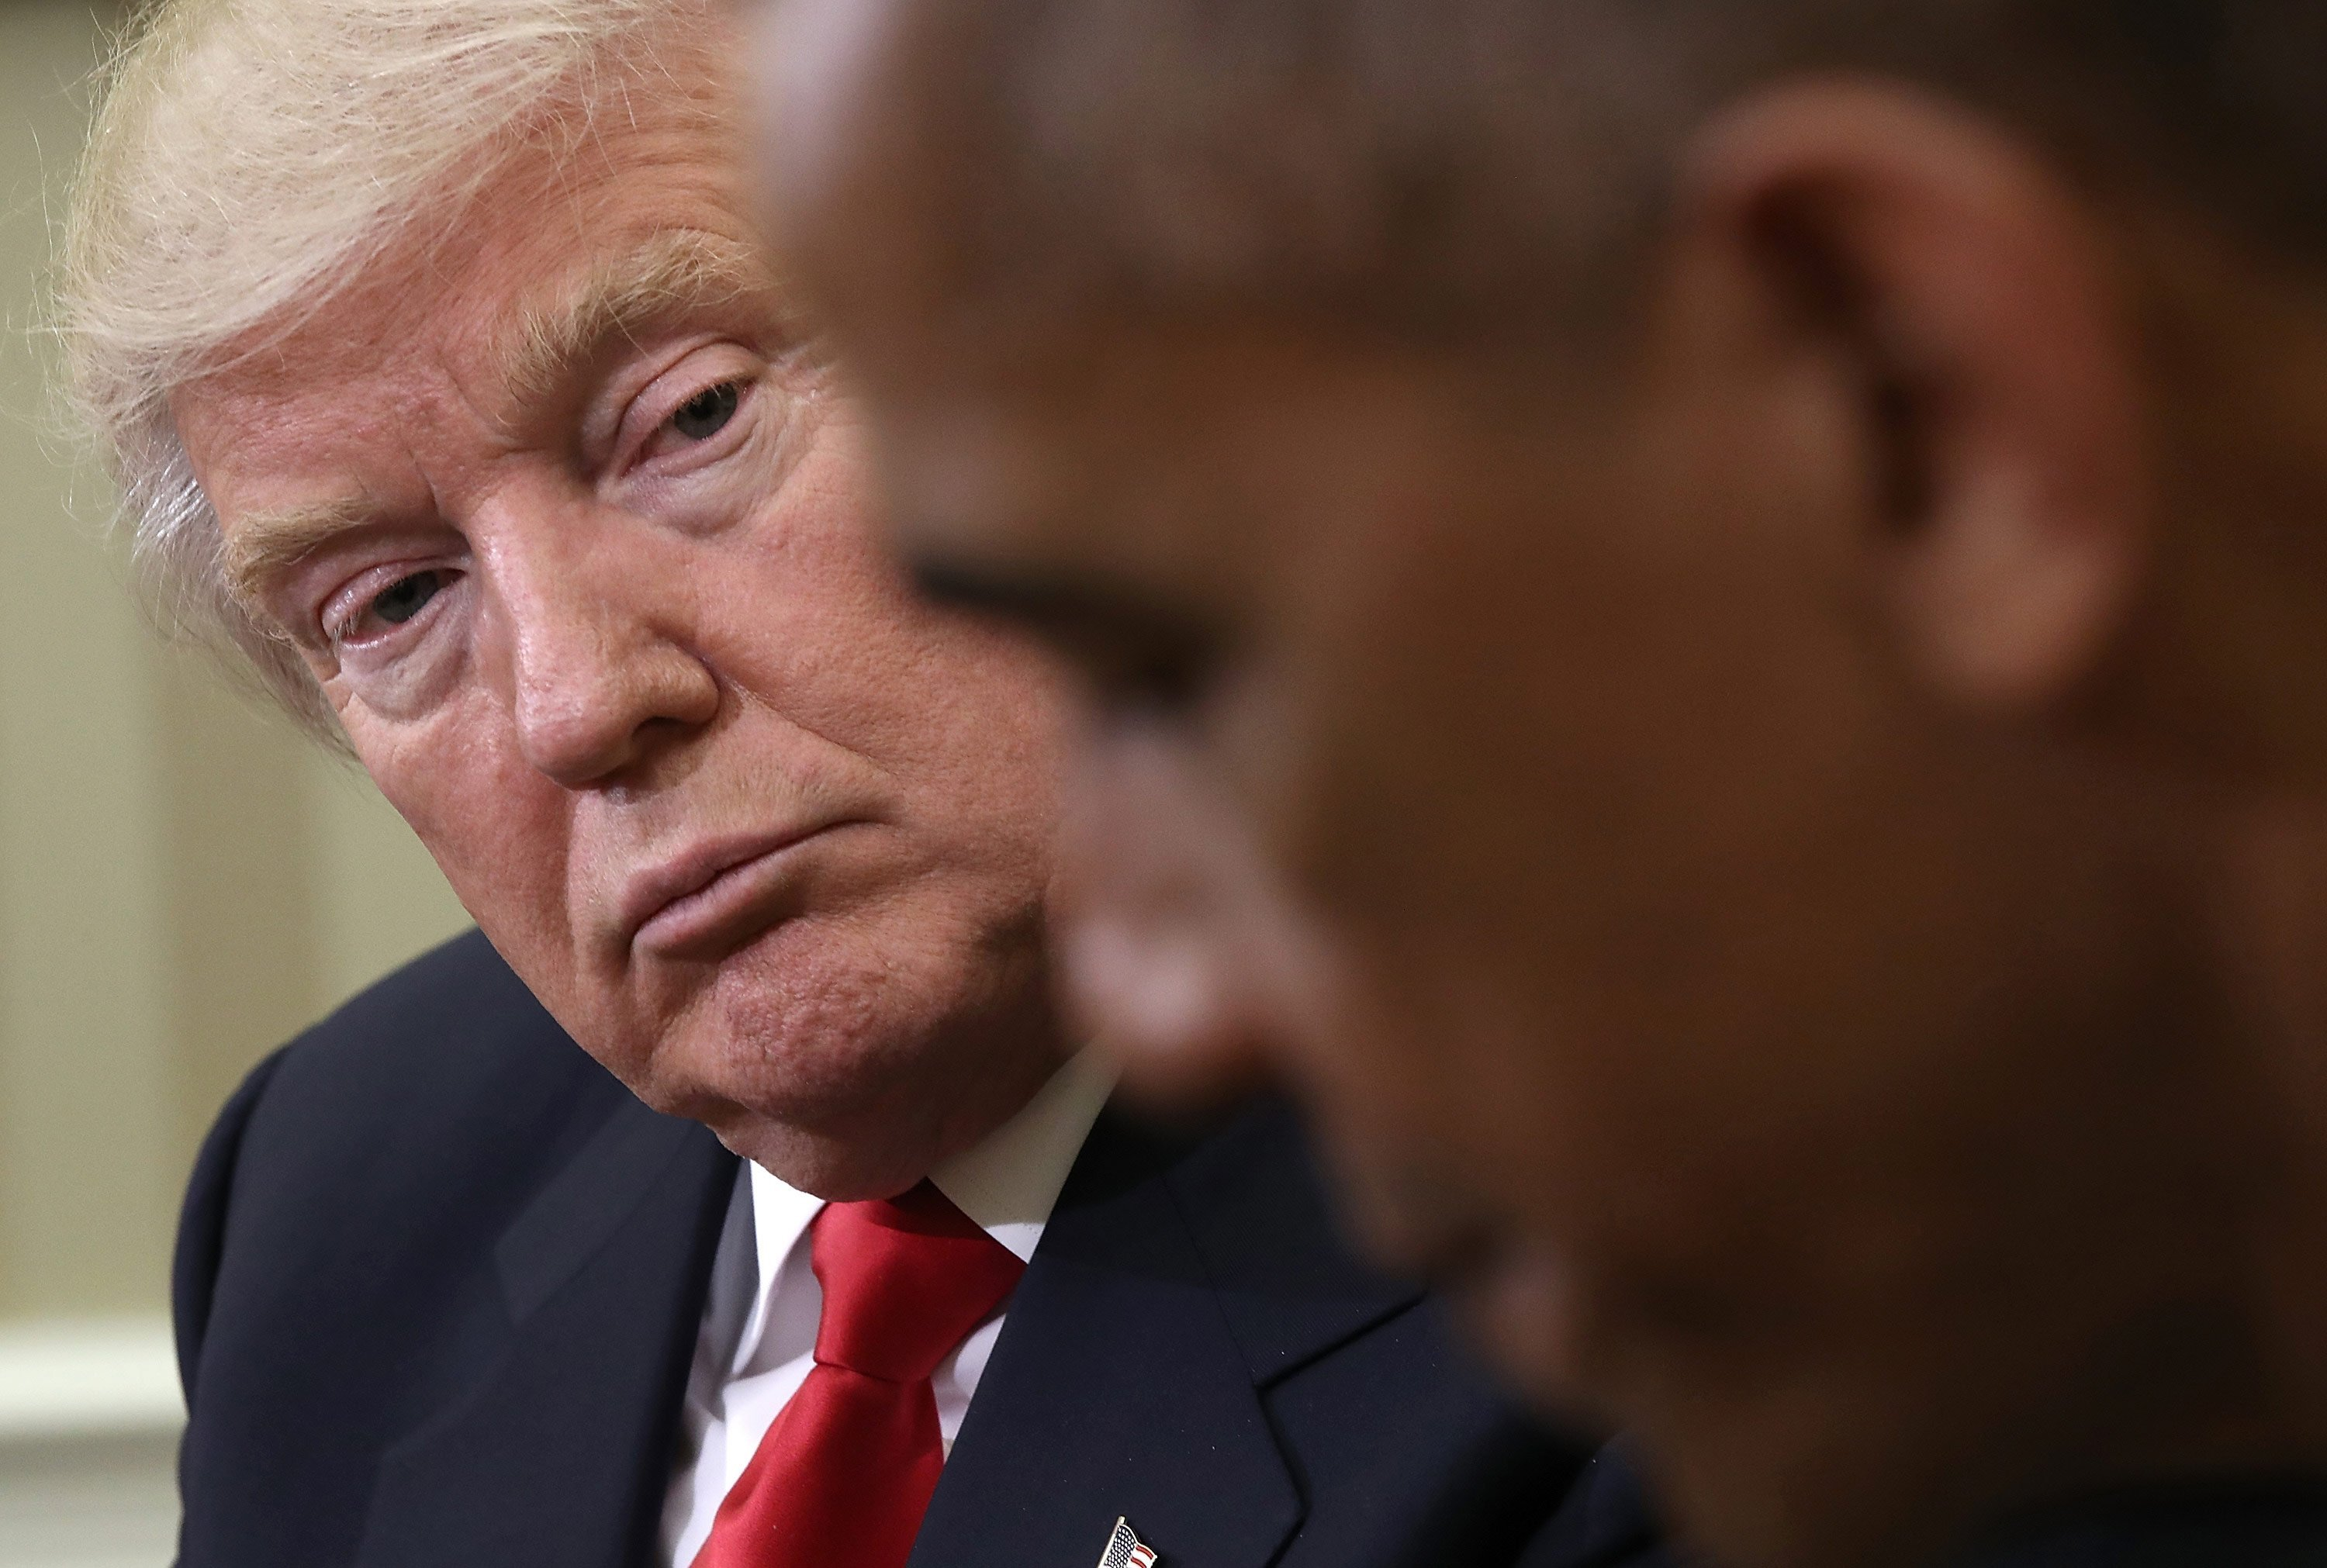 Trump has always measured himself against Obama's legacy. Now he's griping about Obama chasing him